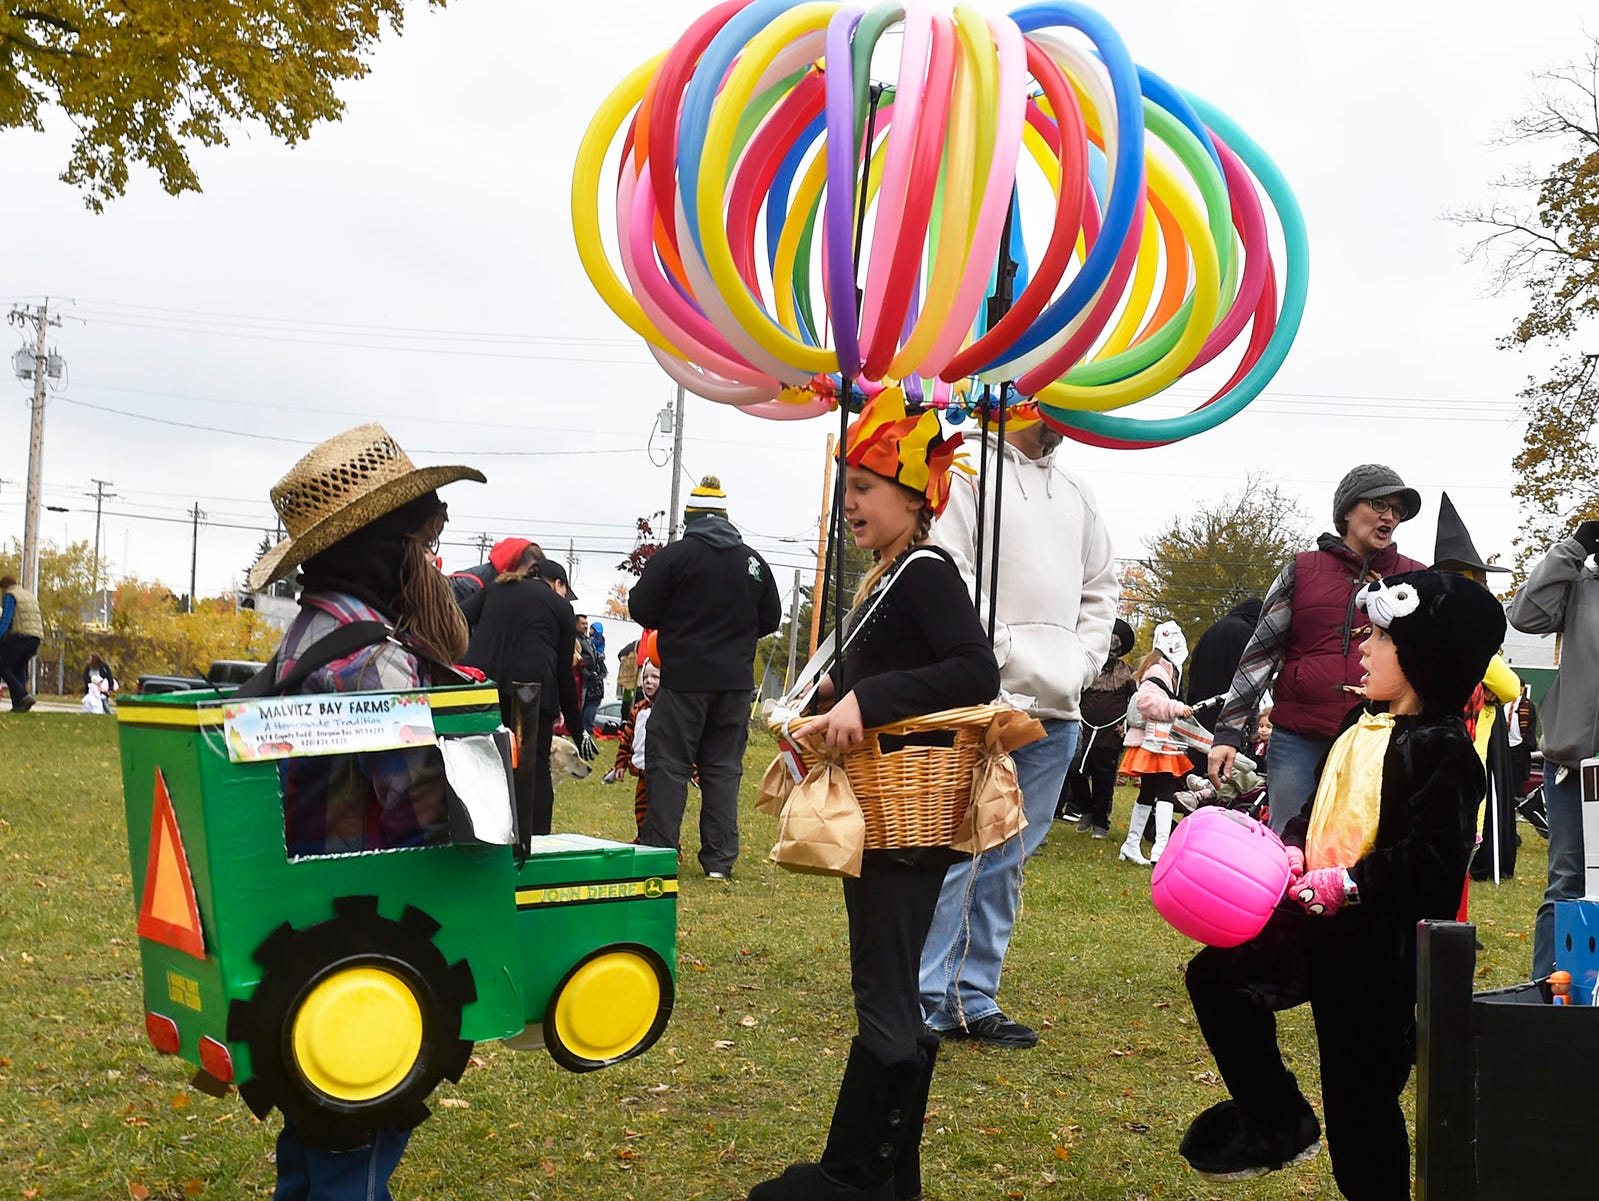 Nathan Sixel, from left, Audrie Schley and Monica Petrina check out each other's costumes at Martin Park prior to the Thrills on Third costume parade on Saturday, Oct. 27, 2018, in Sturgeon Bay. Tina M. Gohr/USA TODAY NETWORK-Wisconsin